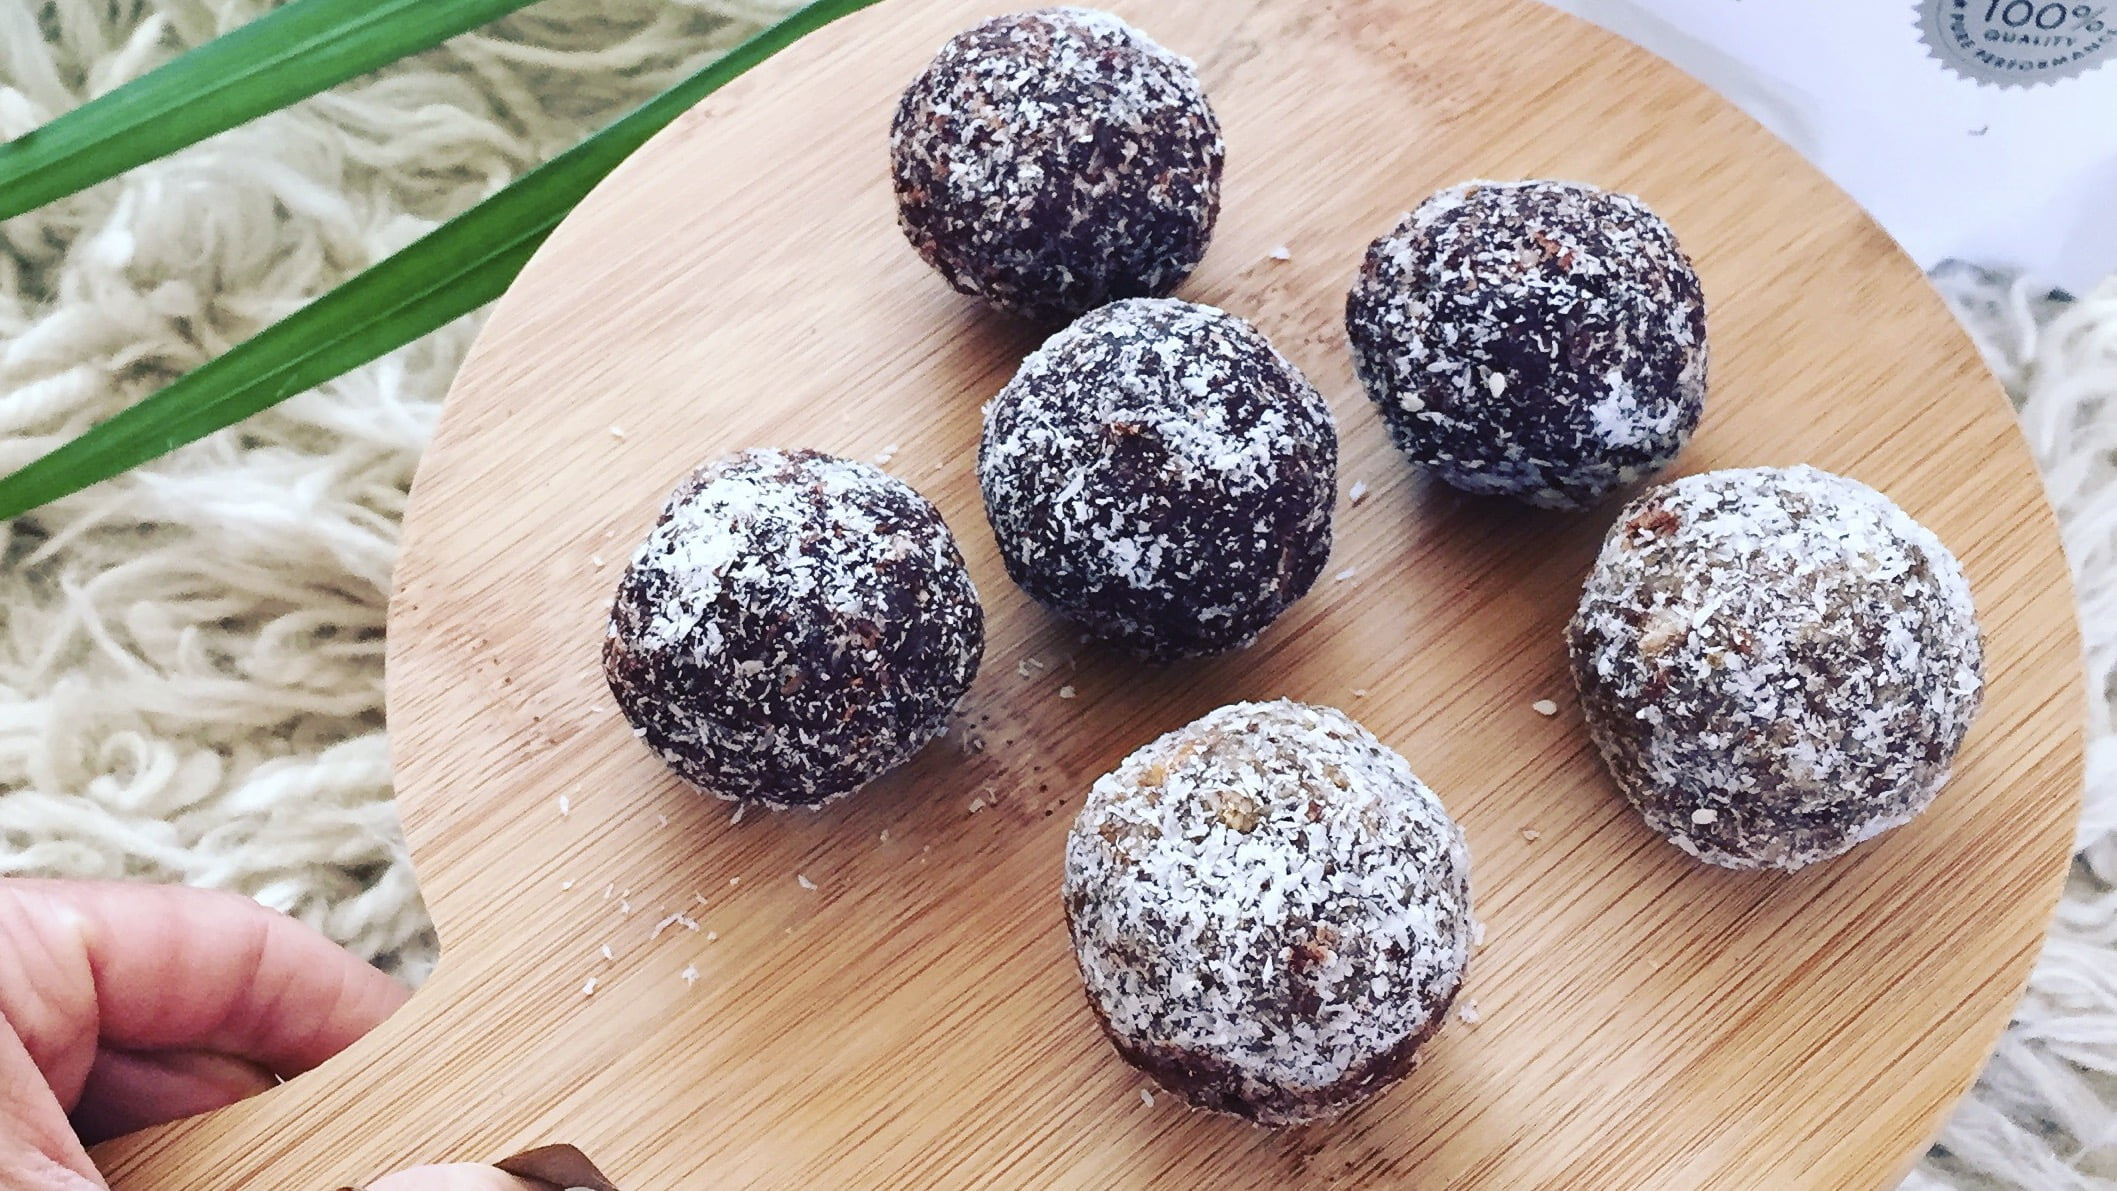 Bliss Balls: The Snack To Curb All Sugar Cravings